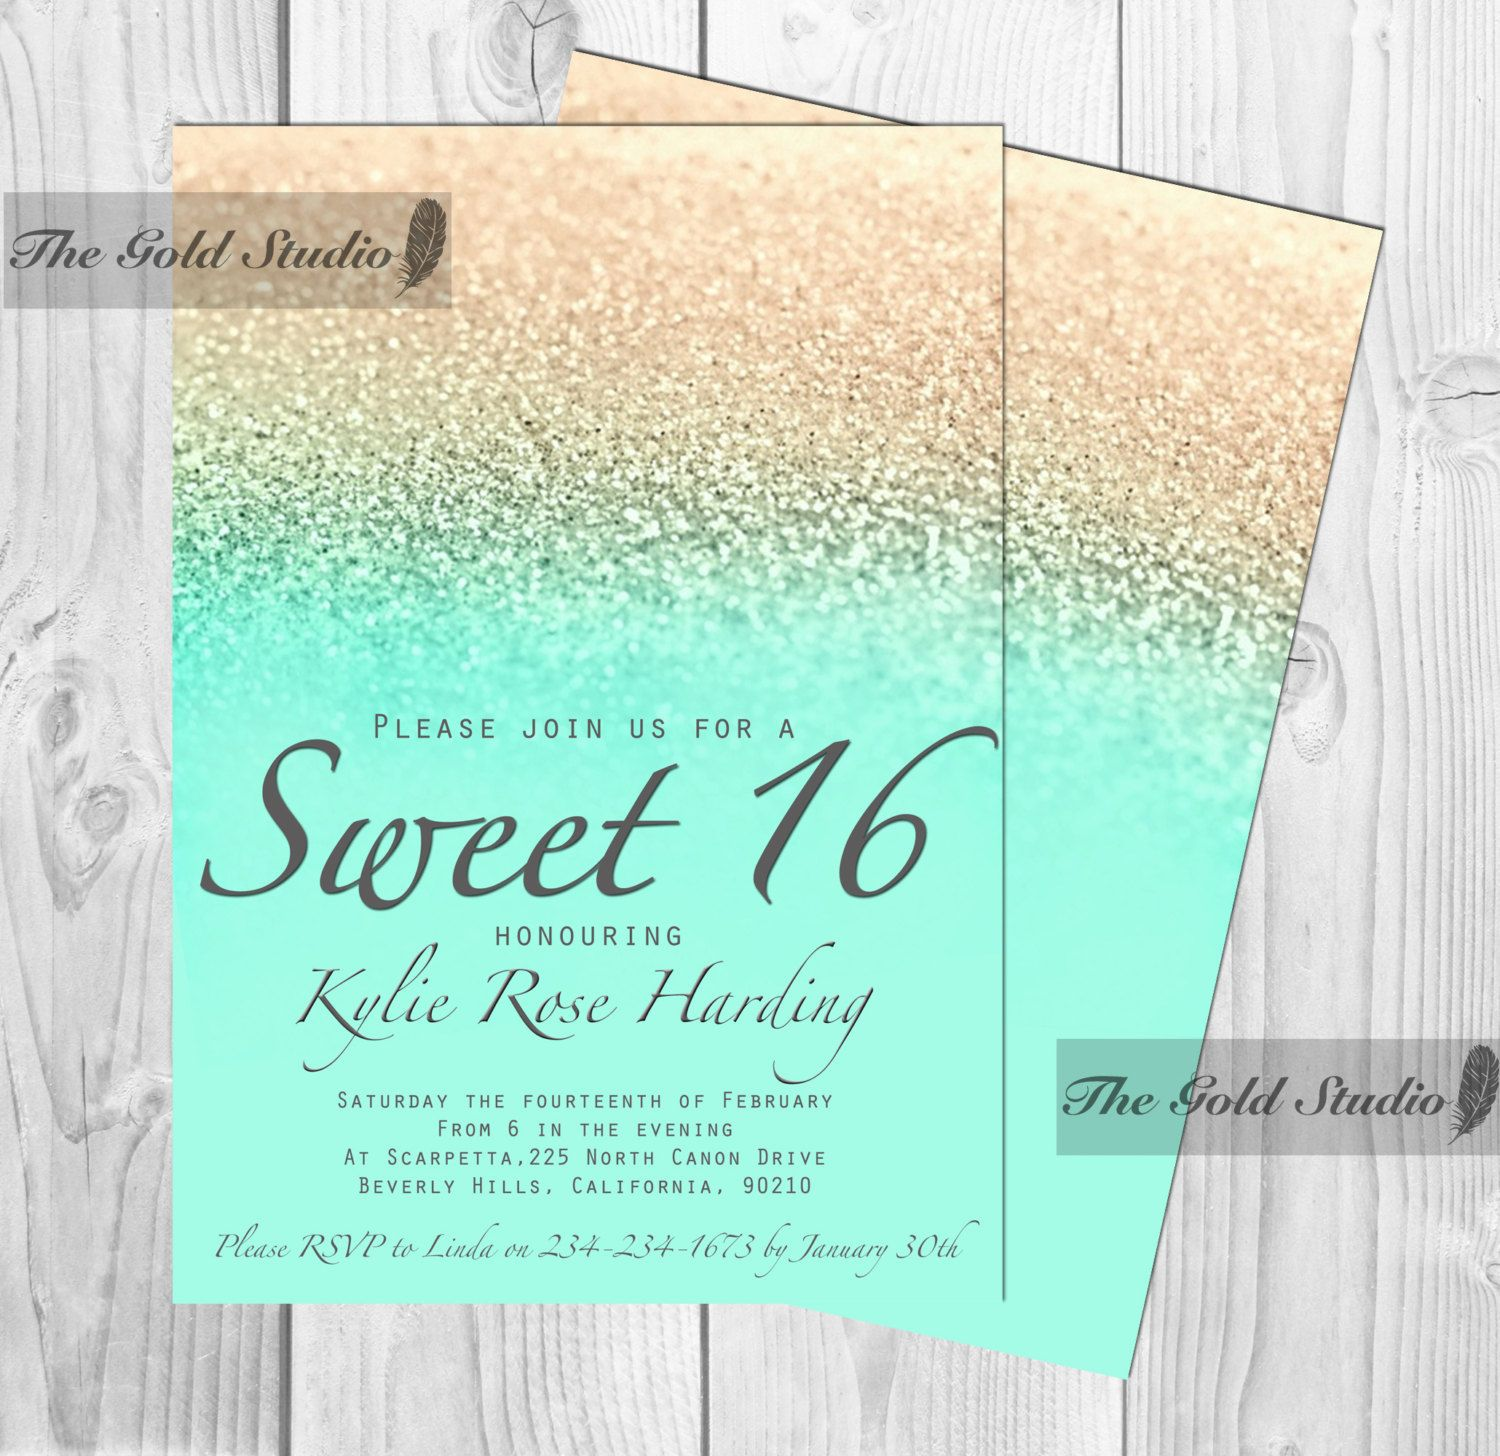 Instant Download Sweet 16 mint green gold glitter invitation sweet sixteen editable template elegant editable in word & pages on PC and Mac #sweetsixteen